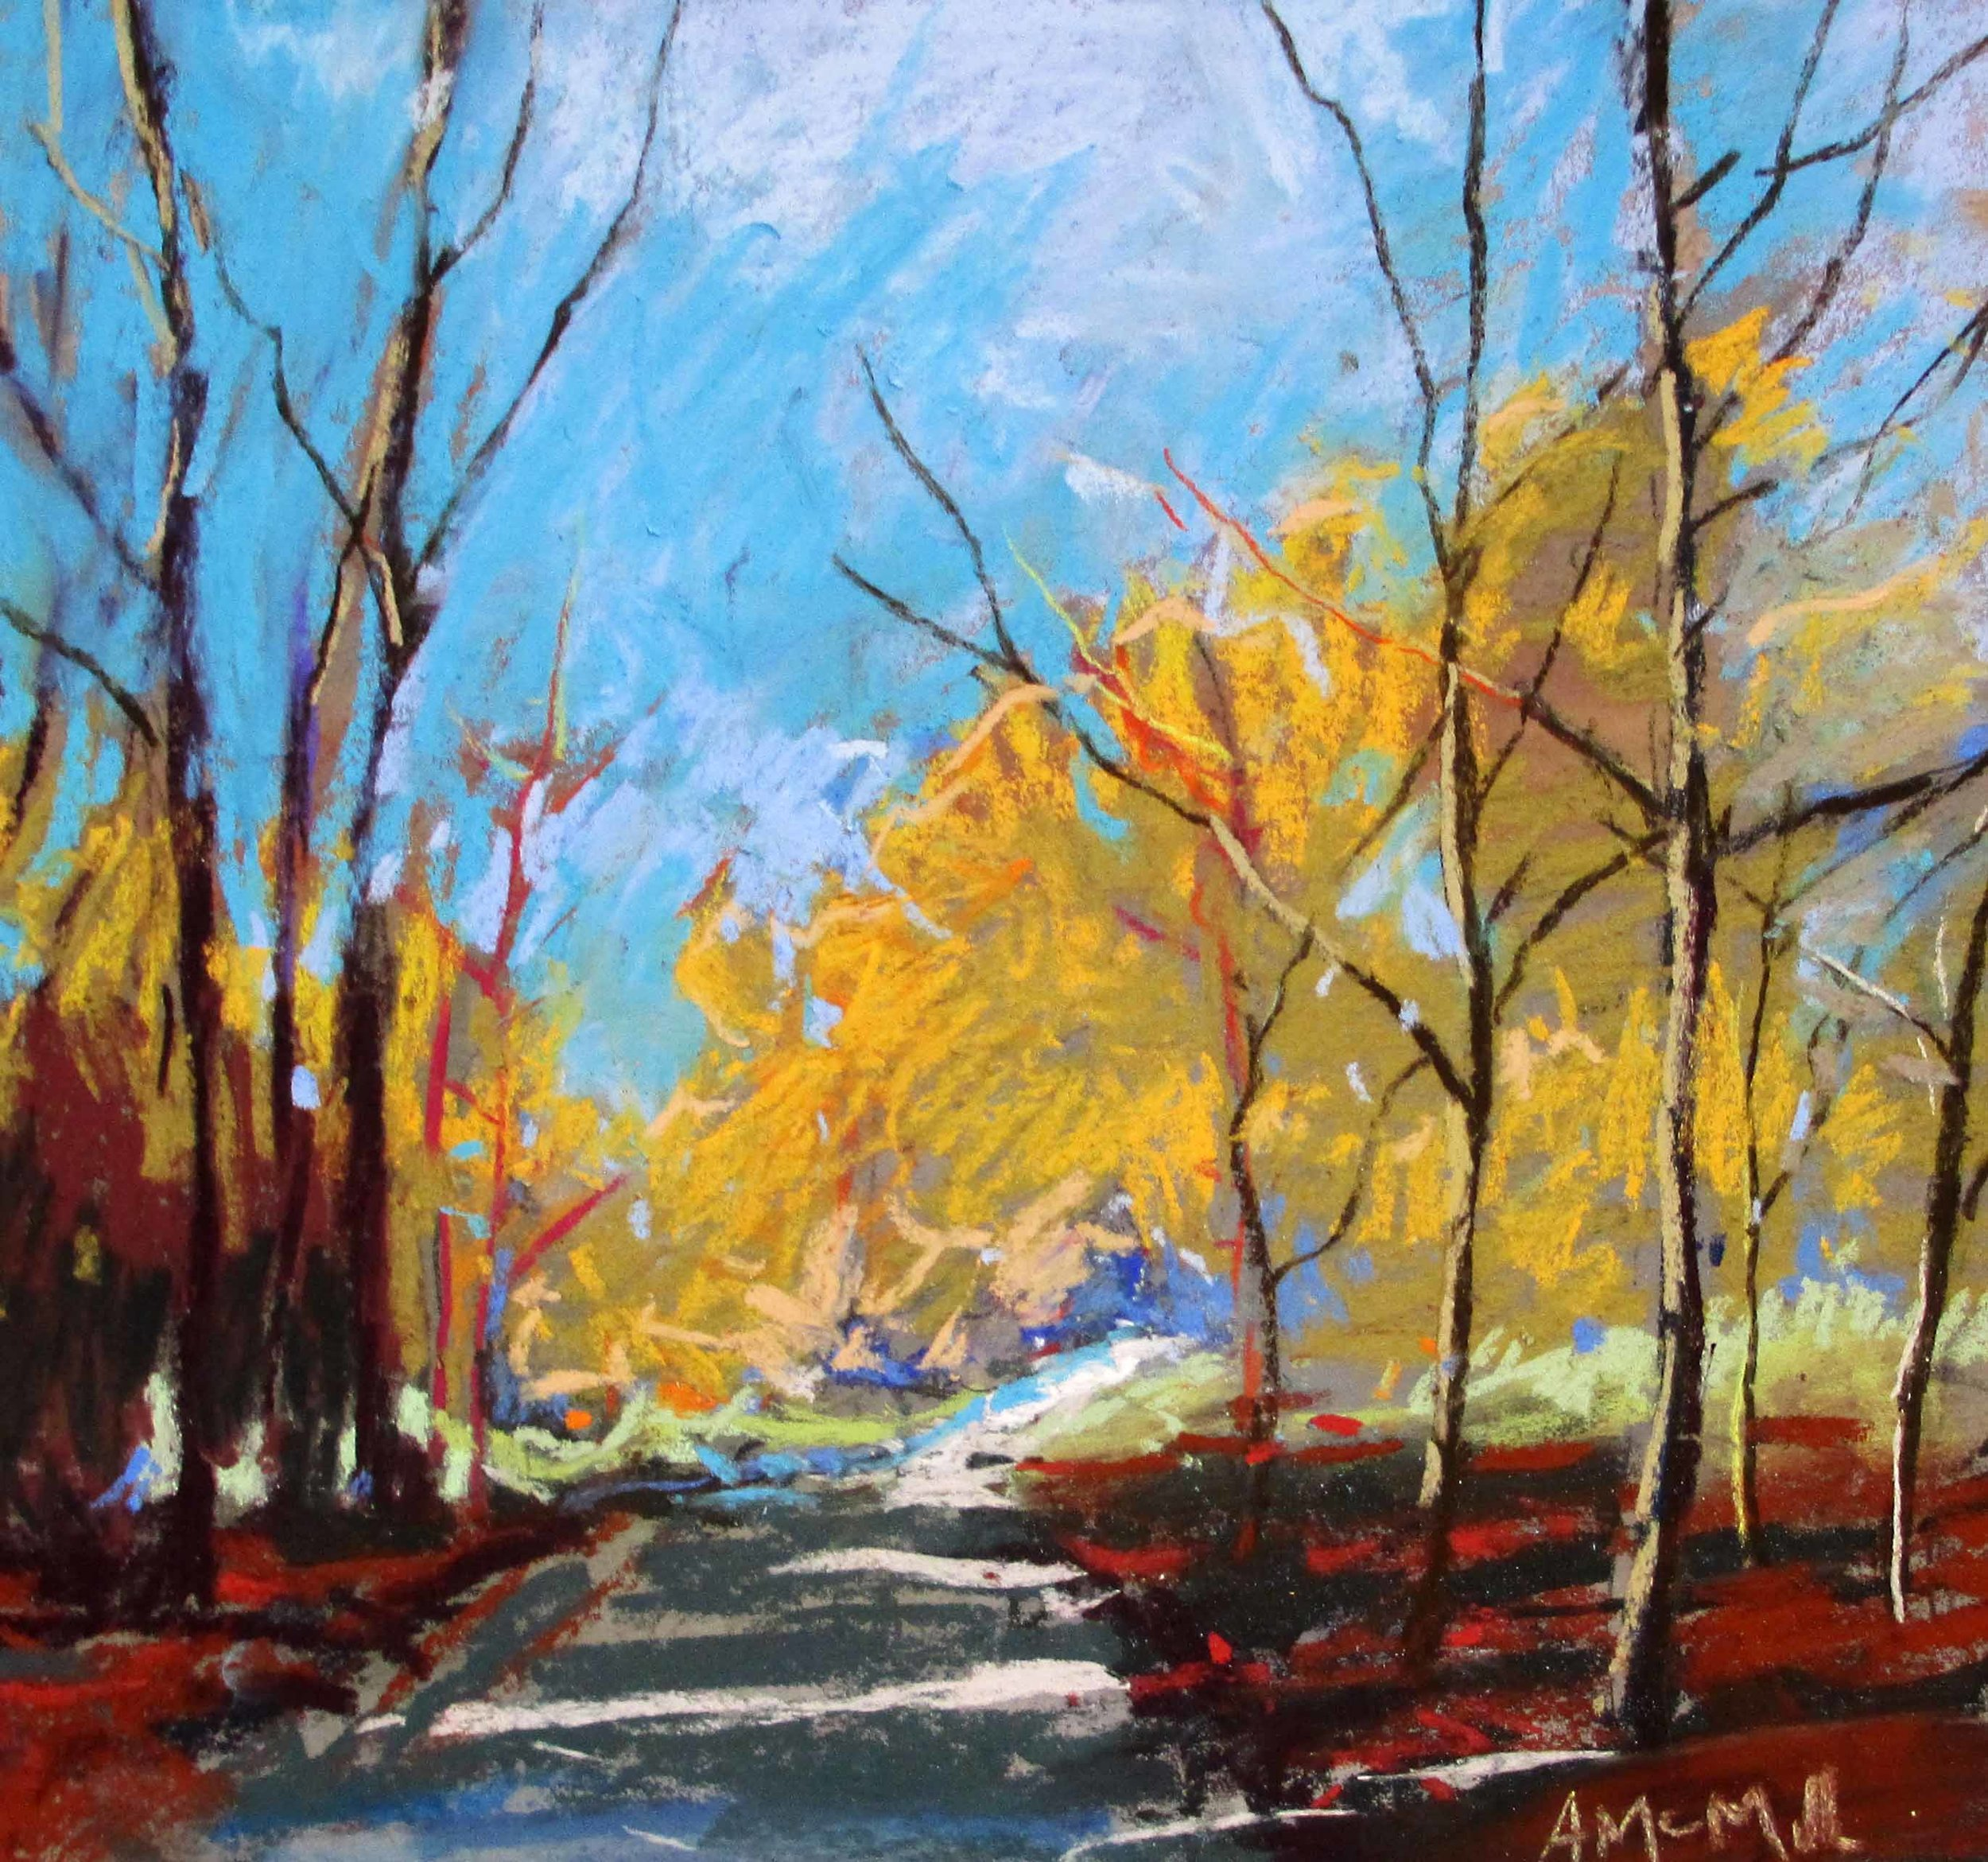 McMillan Walk in the Winter Woods 11 x 13 inches oil